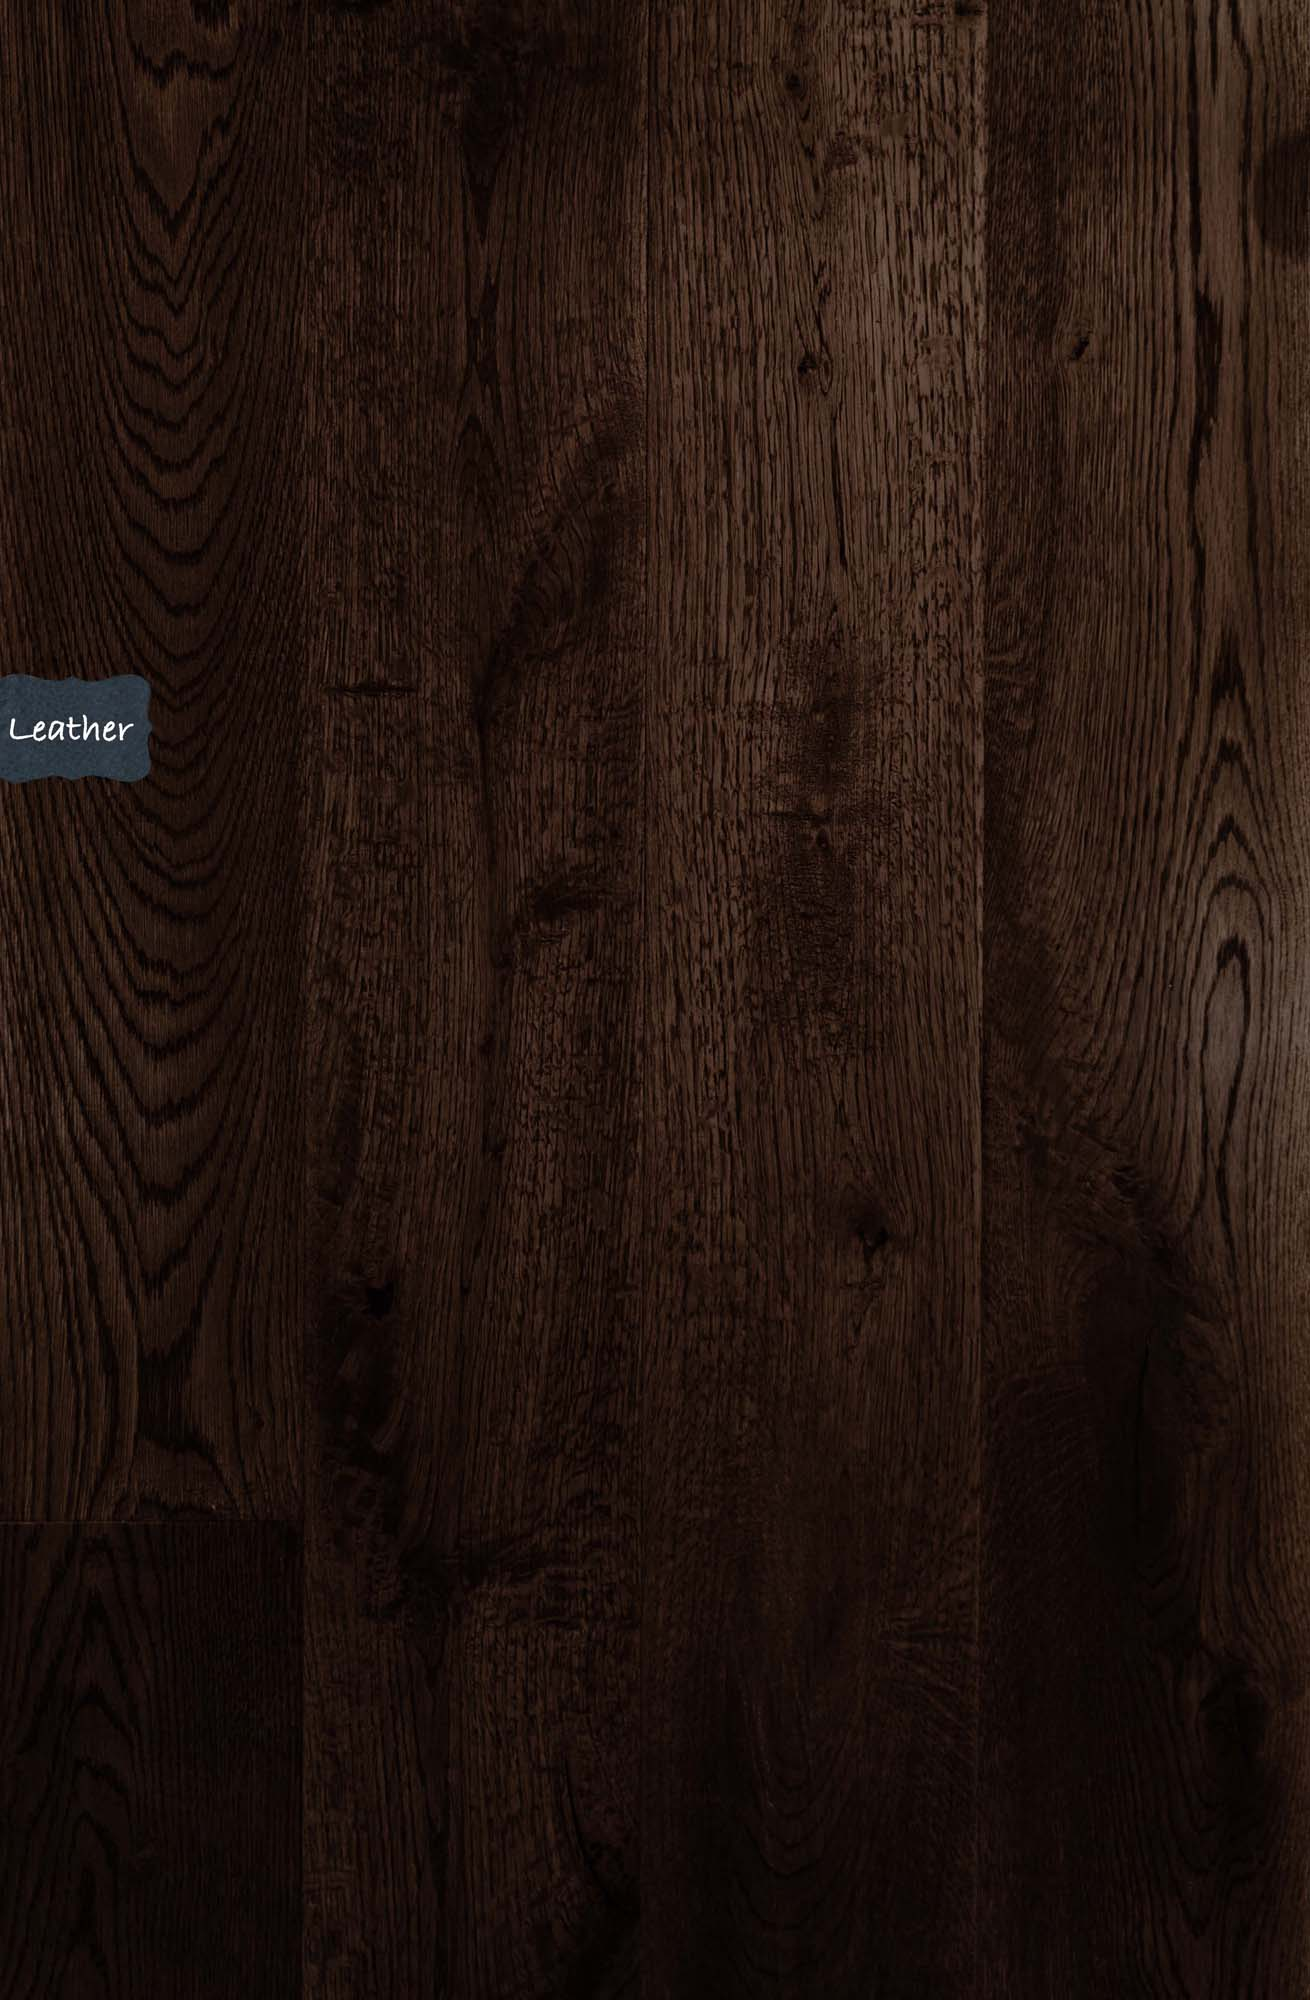 Leather Live Sawn White Oak Wood Flooring. Leather is one of our classic custom wood flooring options at Tennessee Wood Flooring